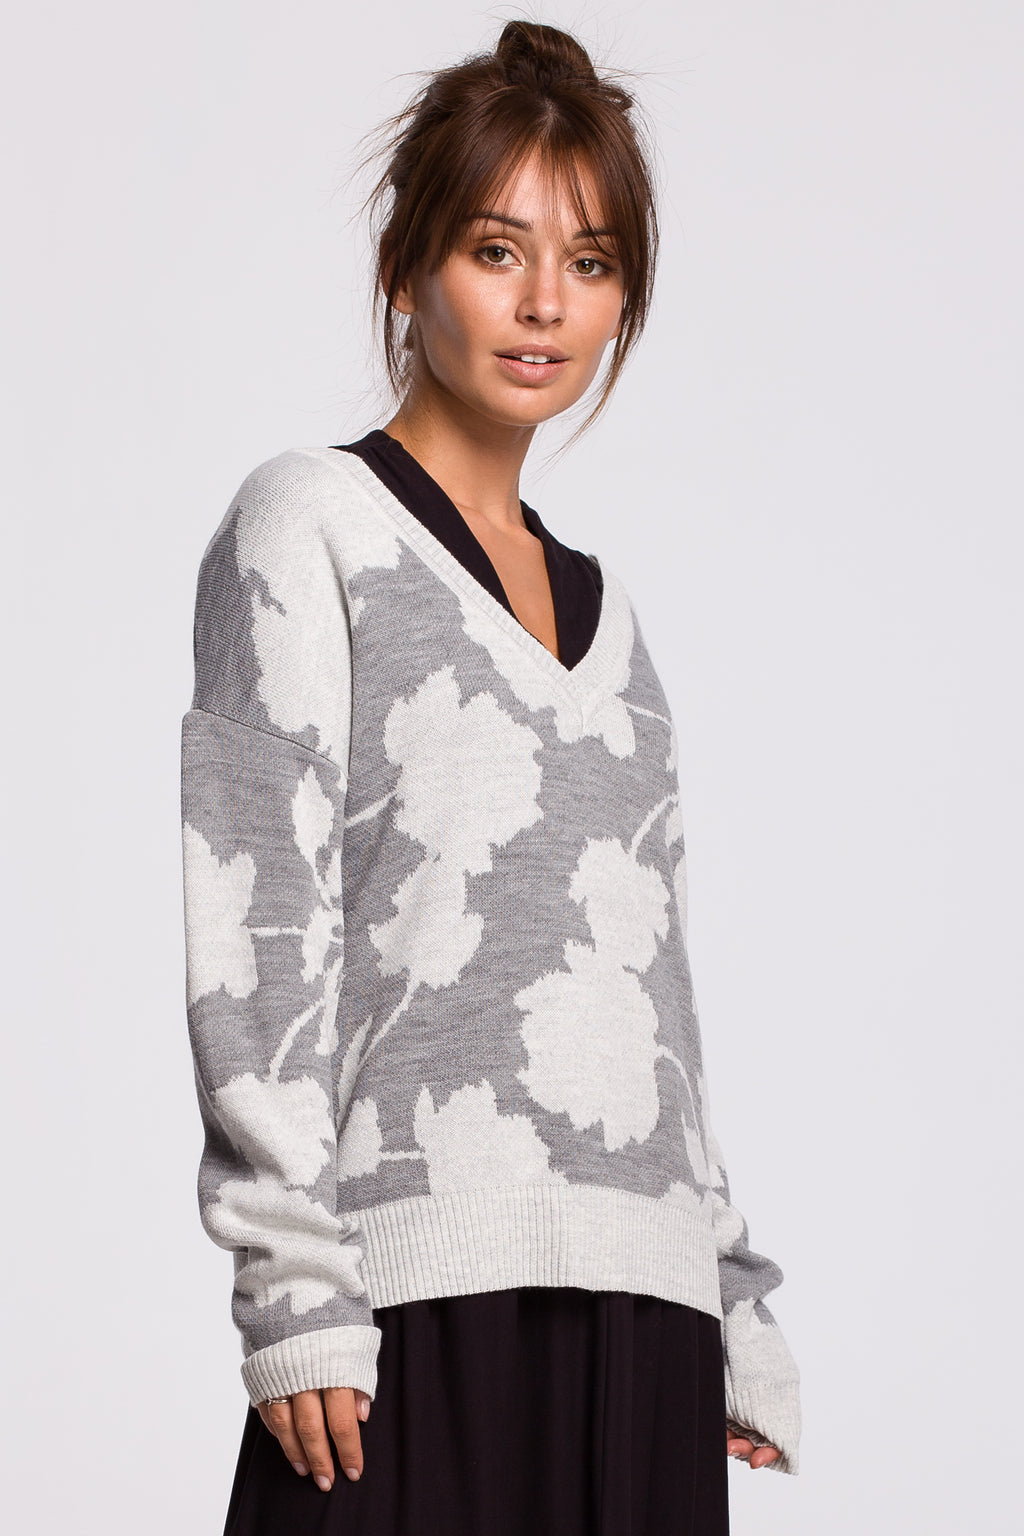 Grey Sweater With Ecru Floral Print - So Chic Boutique